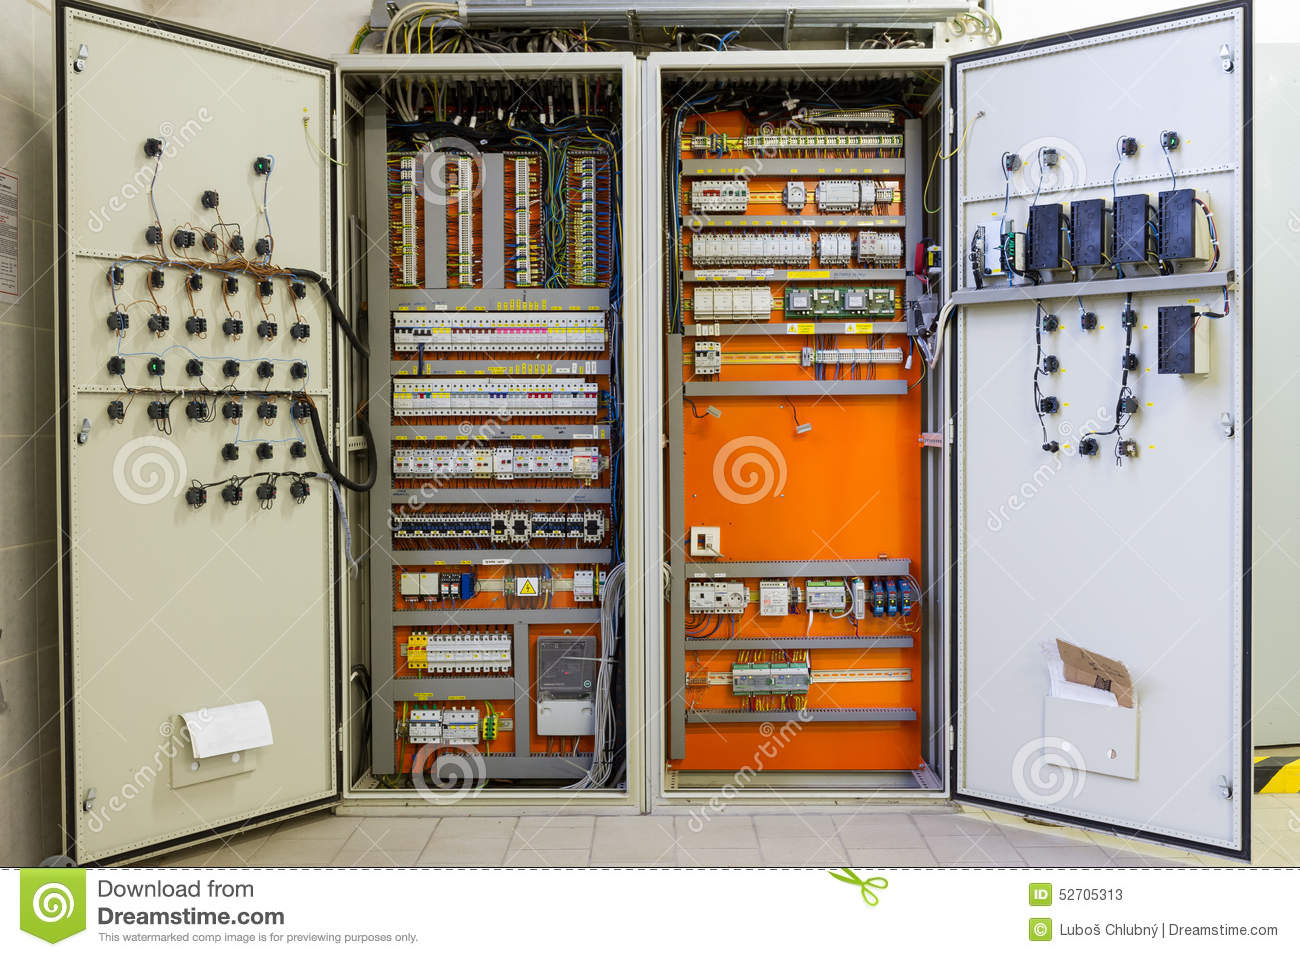 Download Electricity Distribution Box With Wires, Circuit Breakers And Fu  Stock Image - Image of